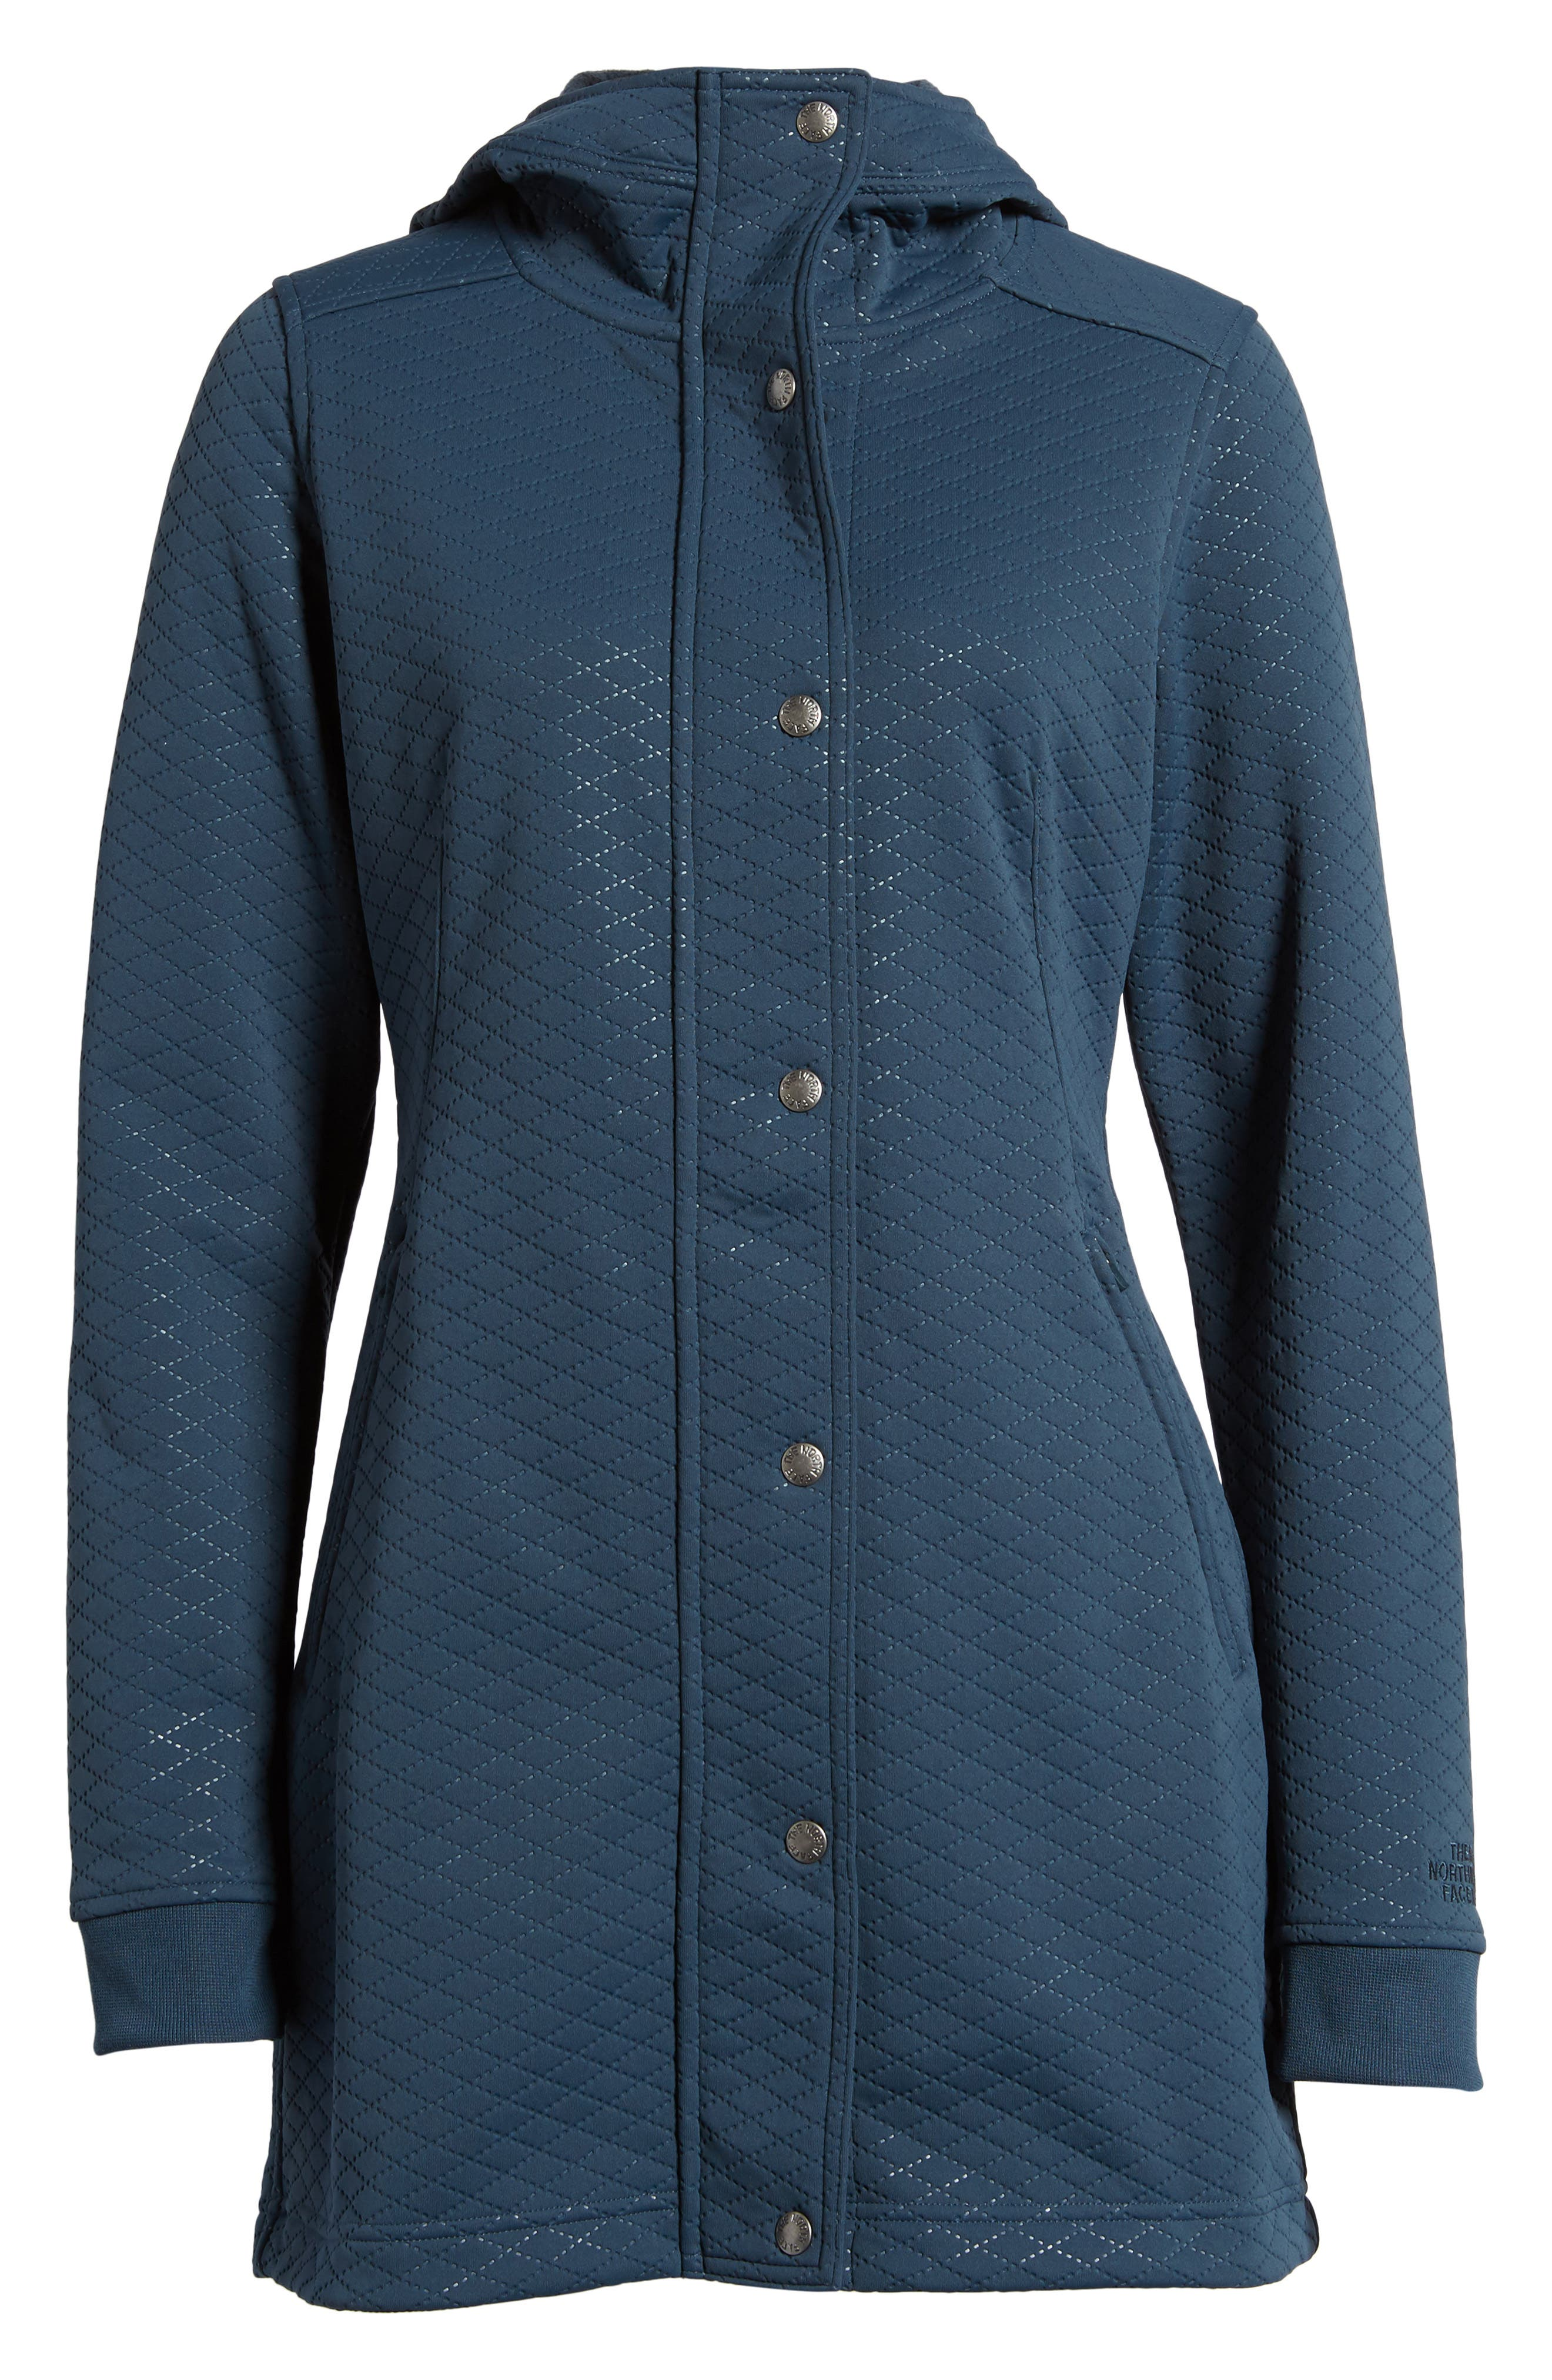 Recover-Up Jacket,                             Alternate thumbnail 10, color,